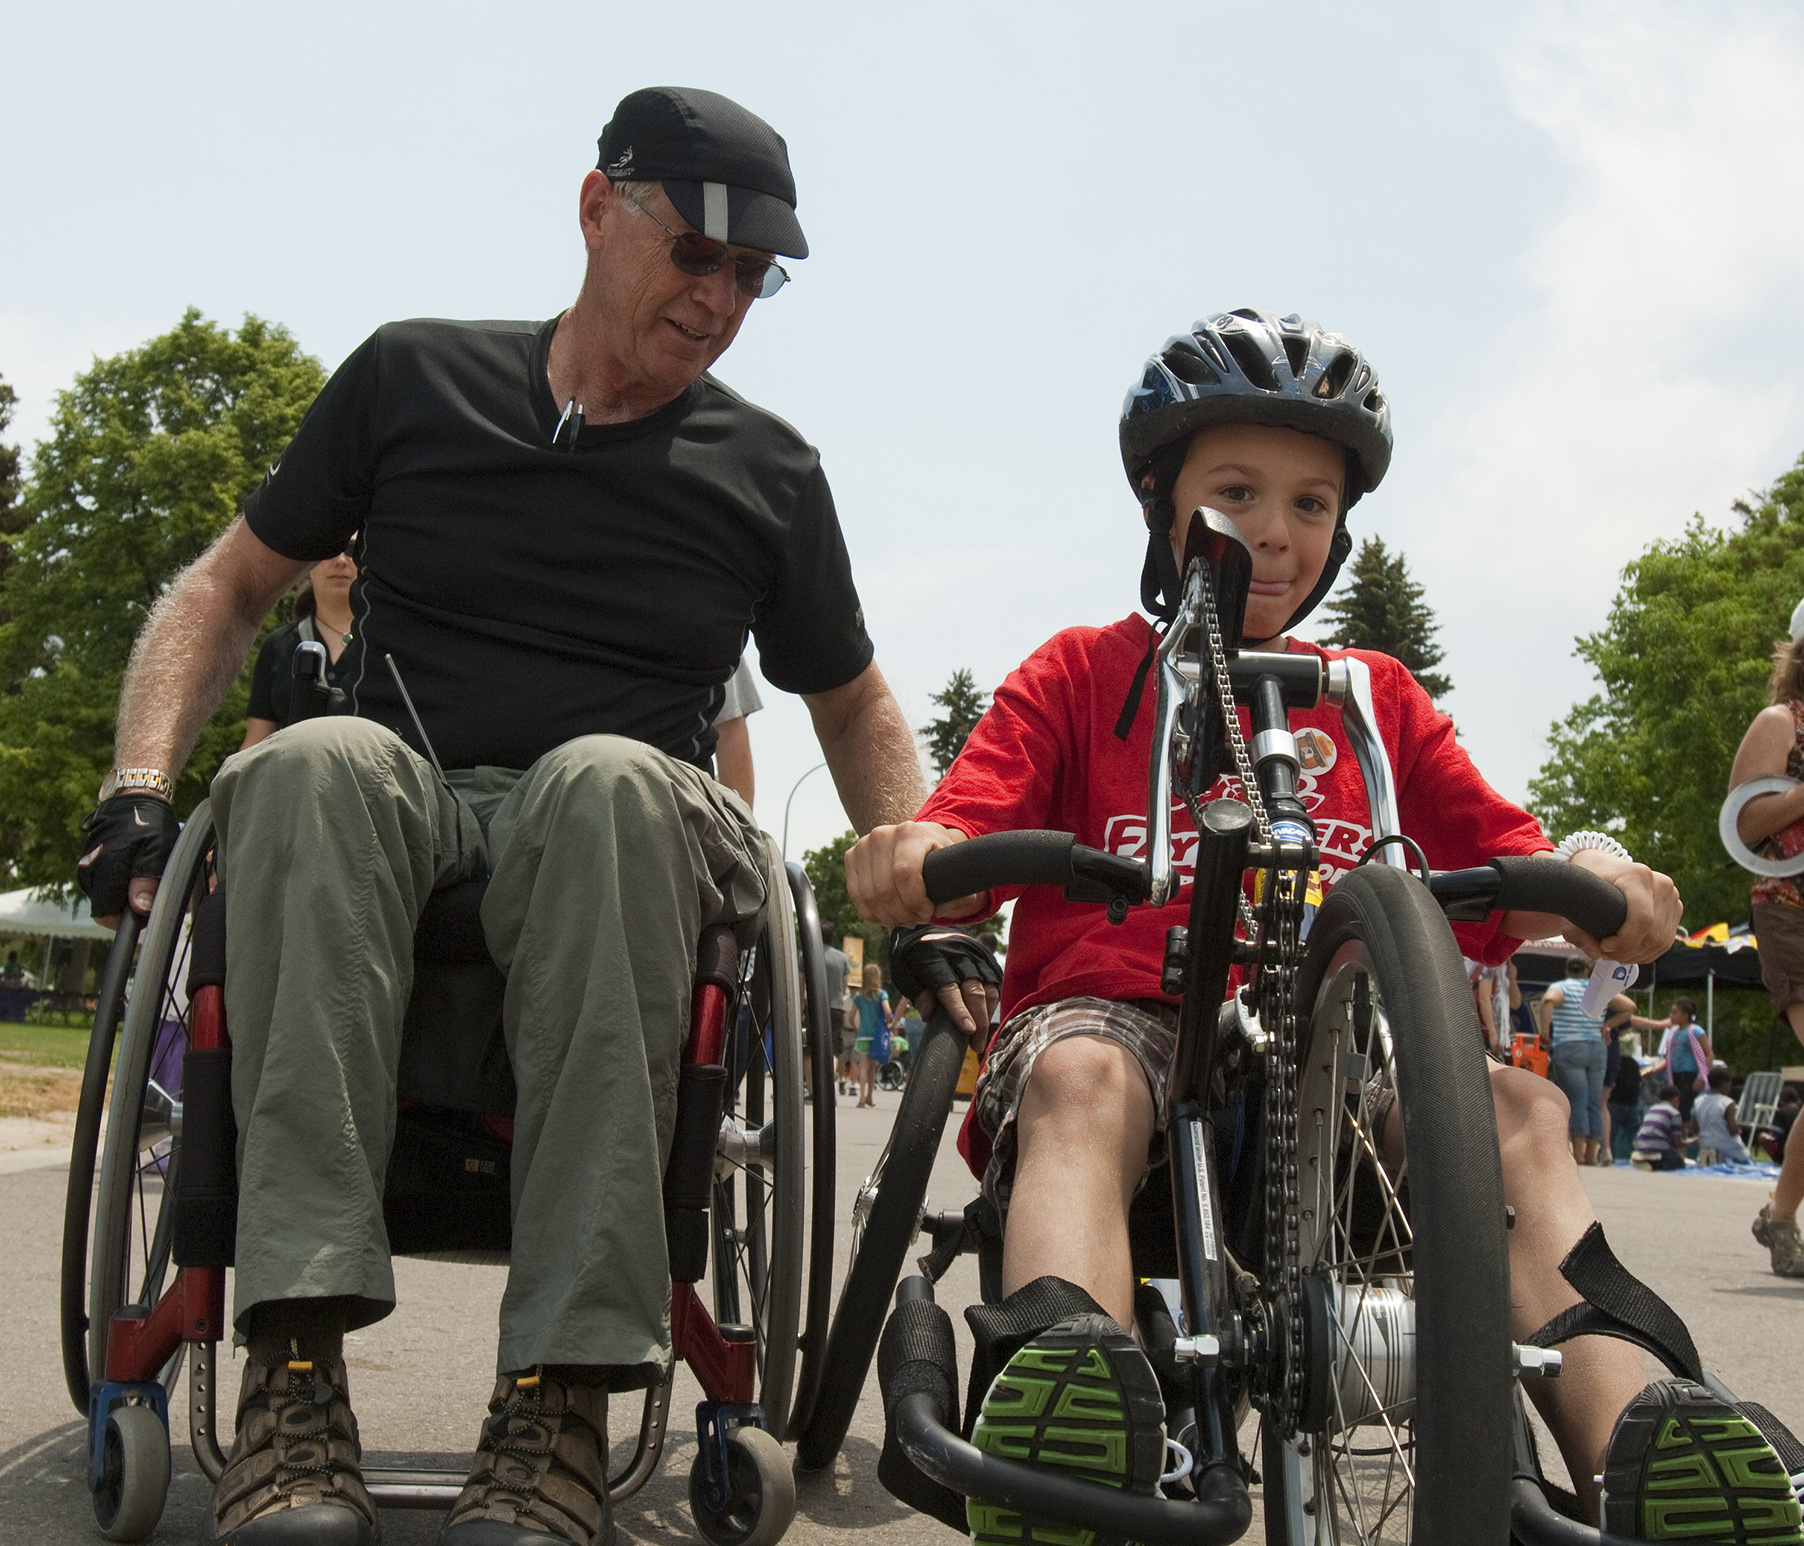 Photo: Man in wheelchair teaches a young boy how to hand-pedal a bike designed for people with disabilities.